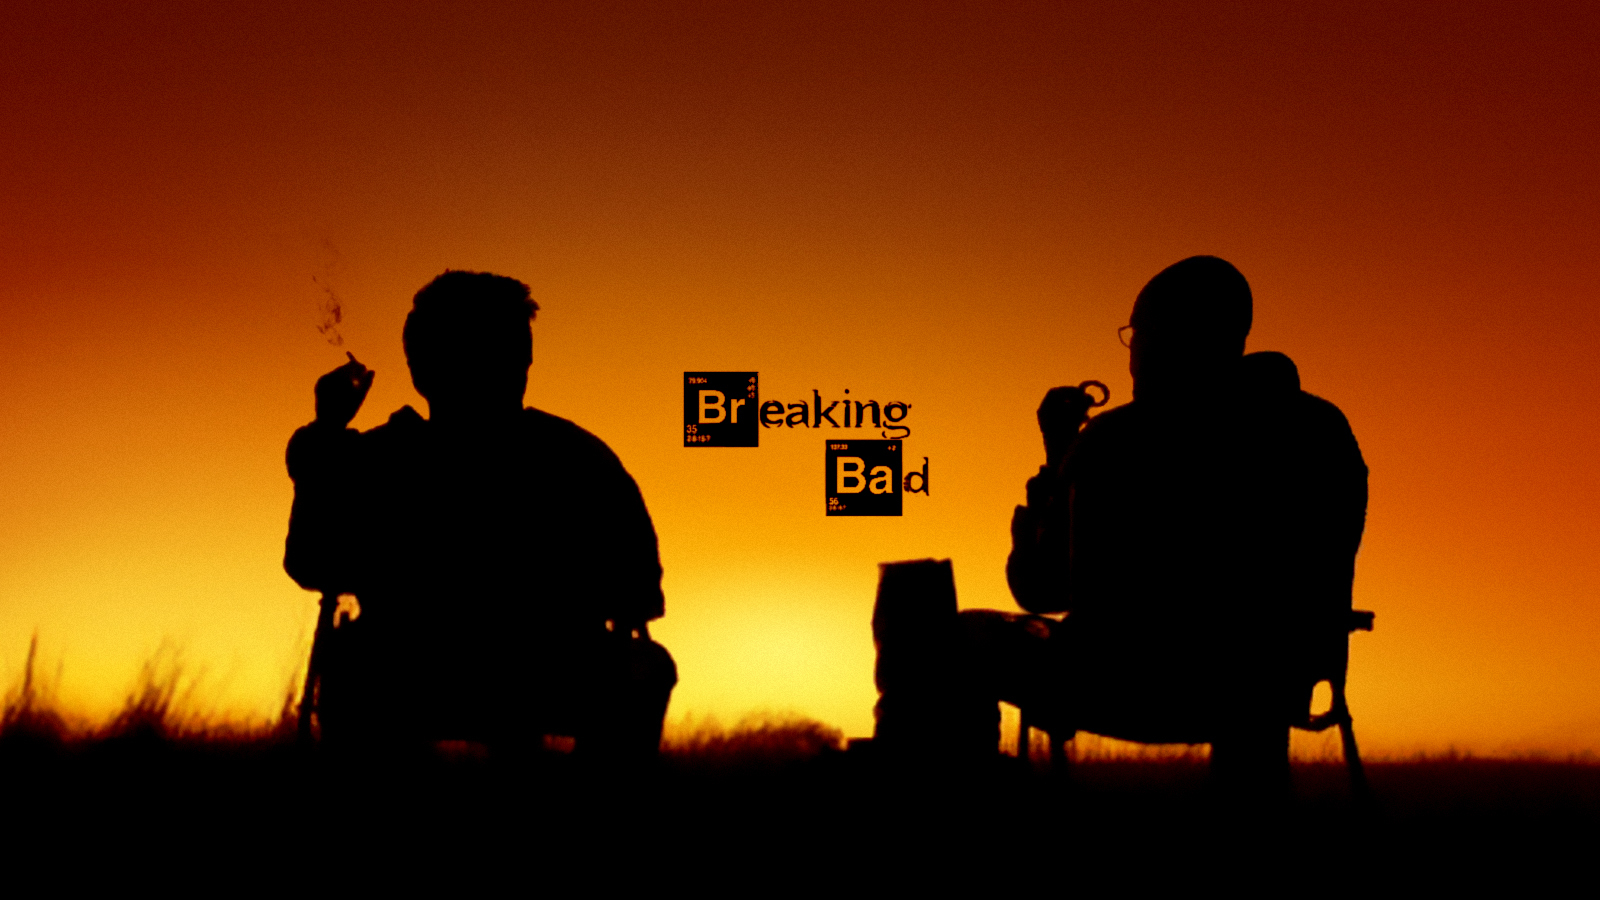 Breaking-Bad-1080p-Sdeerwallpaper-wallpaper-wpc9003181